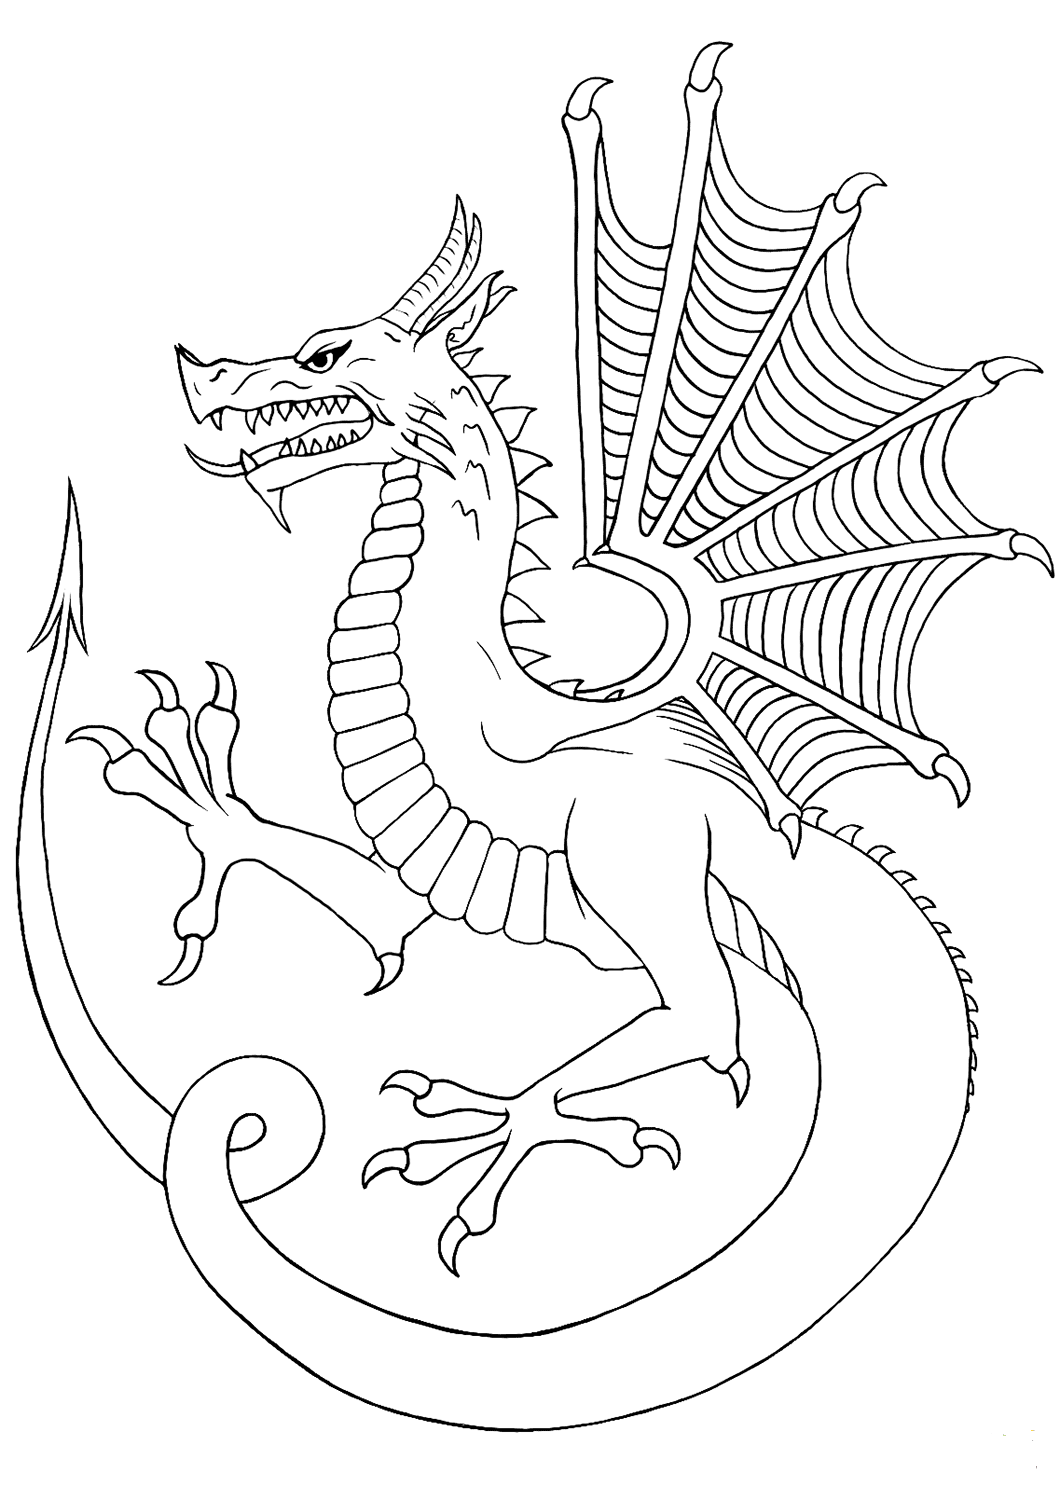 dragon coloring page coloring pages for adults difficult dragons at getdrawings coloring dragon page